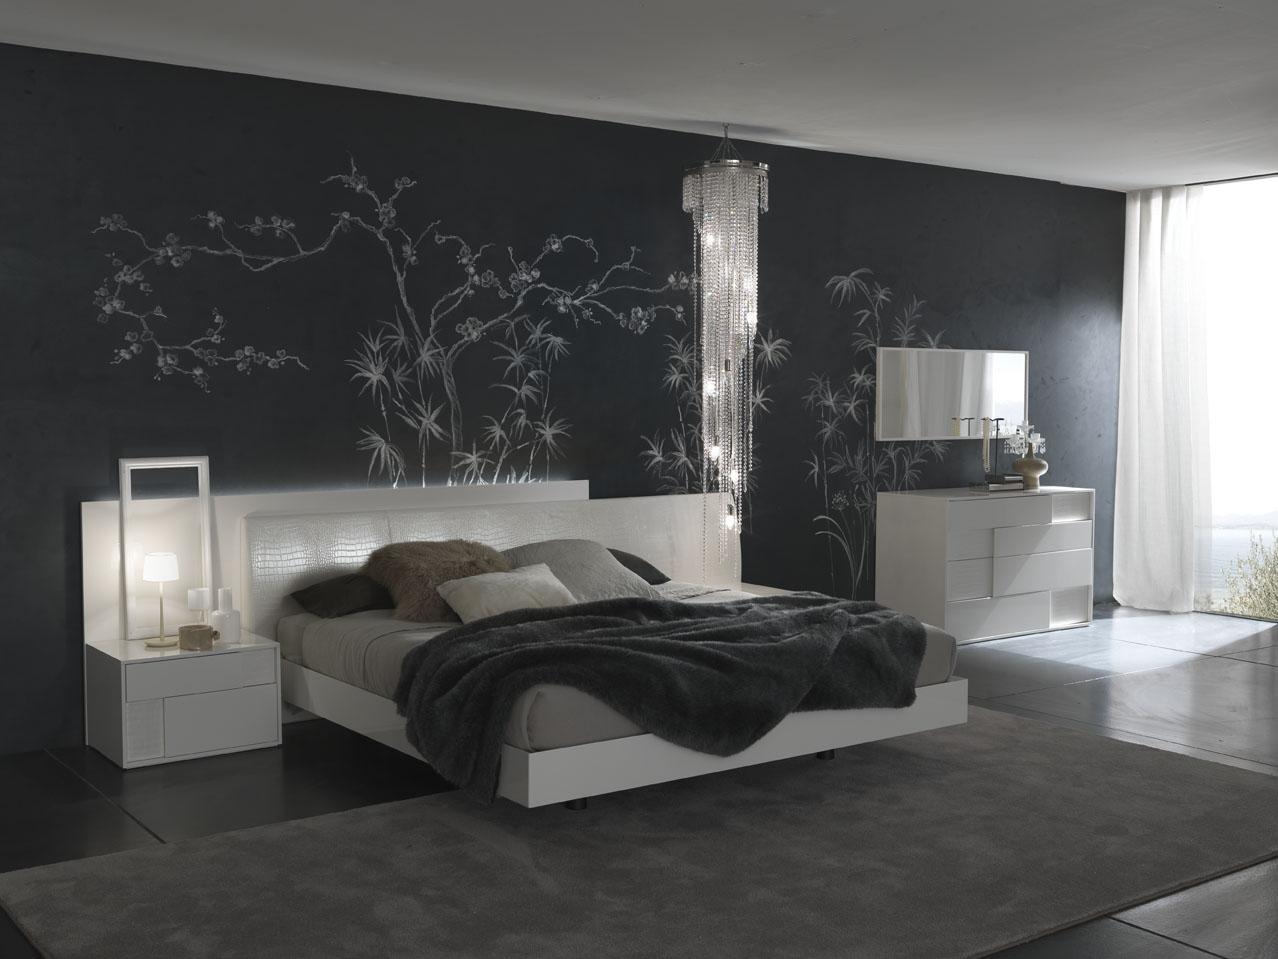 bedroom-design-ideas-pictures-contemporary-design-on-bedroom-design-ideas